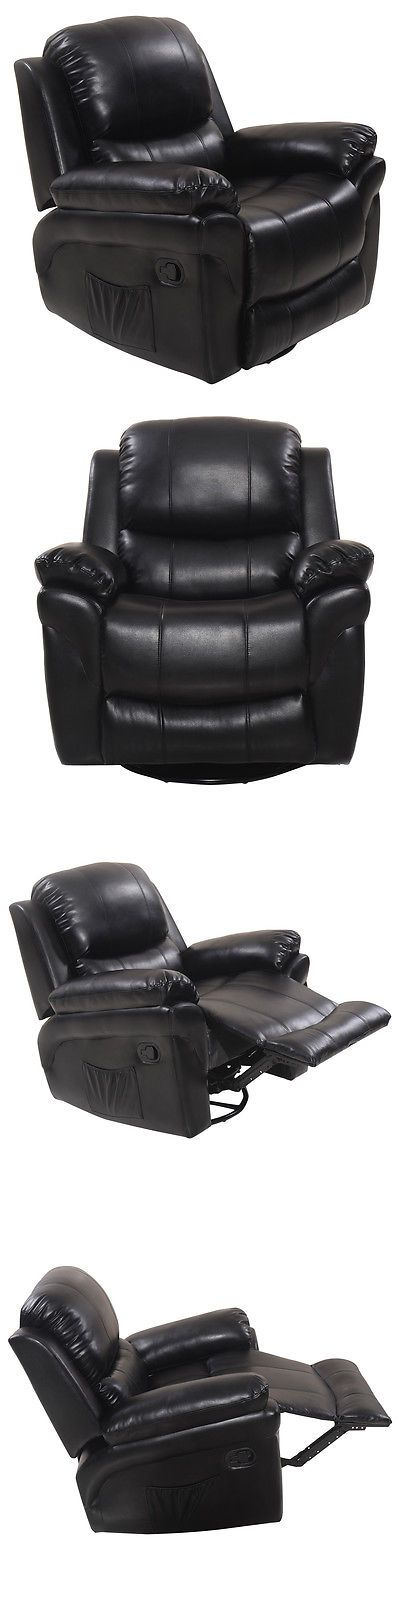 Electric Massage Chairs: Massage Sofa Recliner Chair Rocking Lounge Heated Swivel Ergonomic W Control -> BUY IT NOW ONLY: $259.99 on eBay!